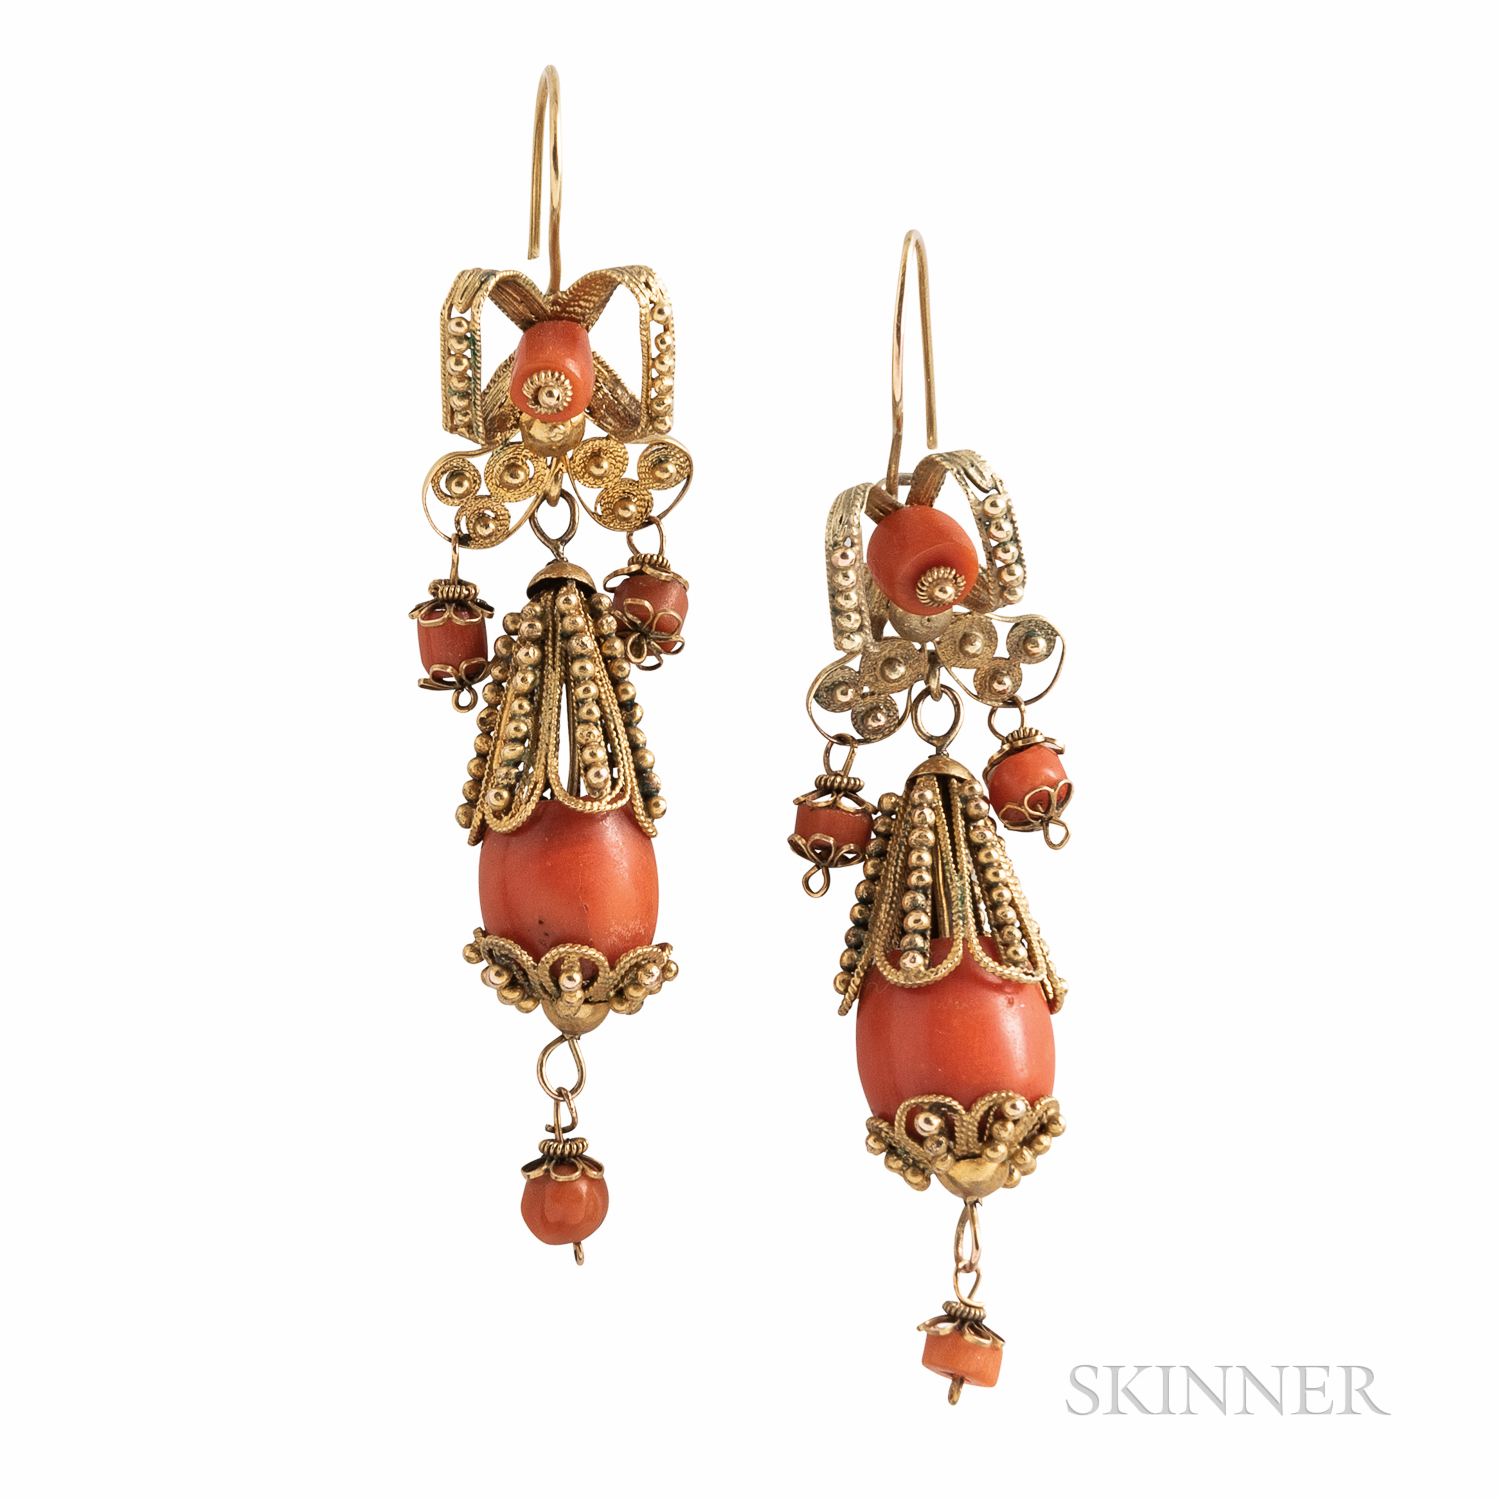 Antique Gold and Coral Earrings